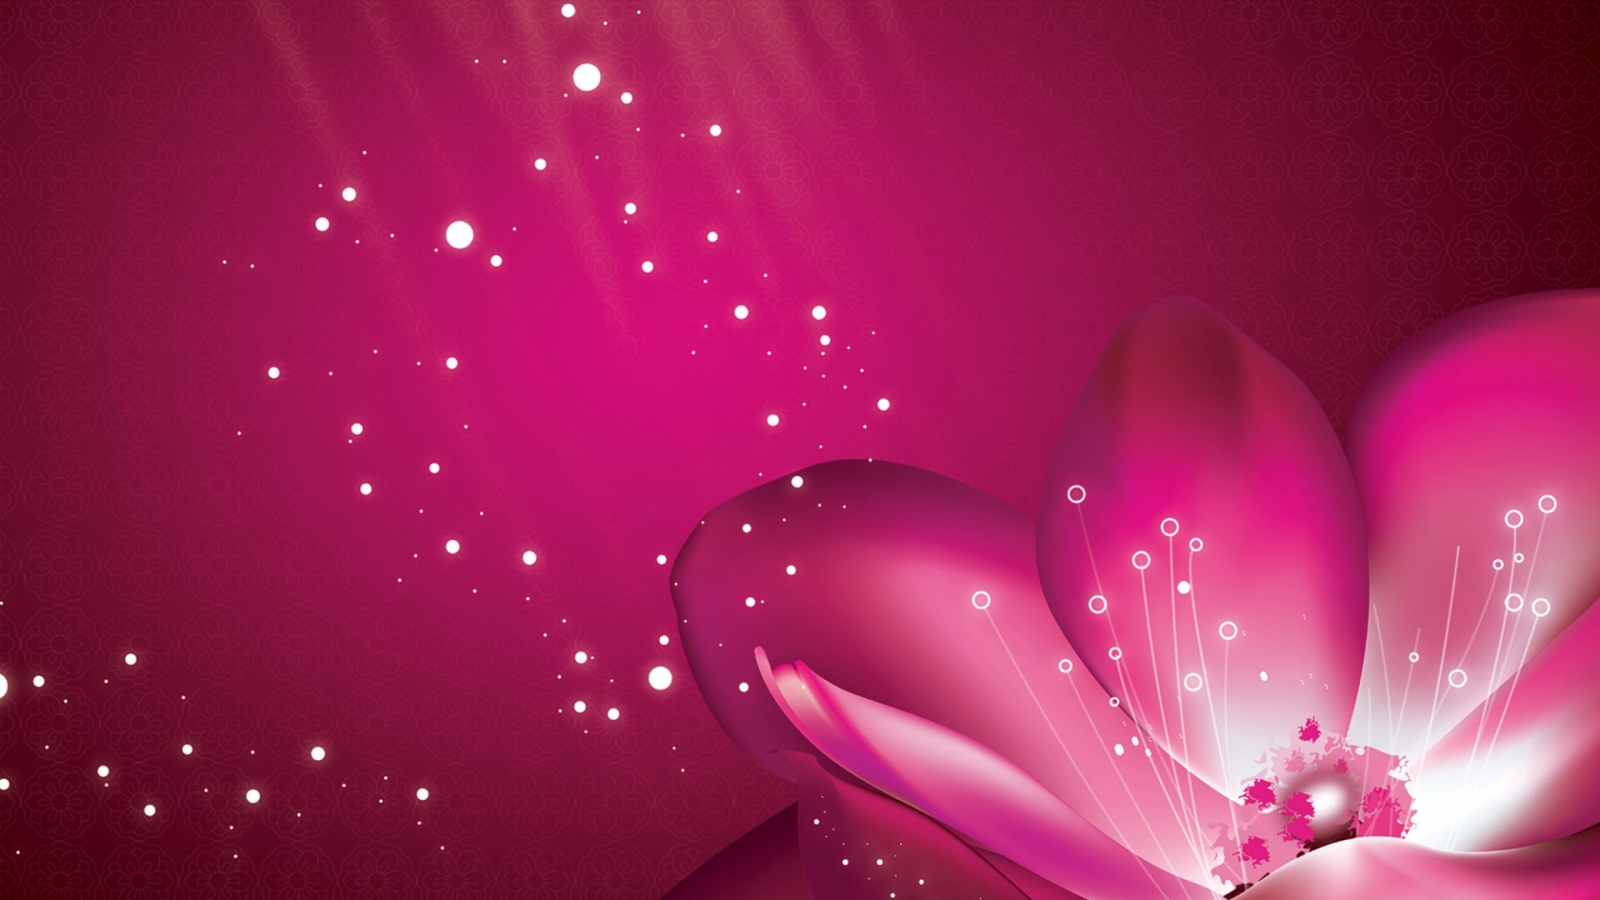 Flower Pink Petals Pink Background Ultra Hd Wallpapers